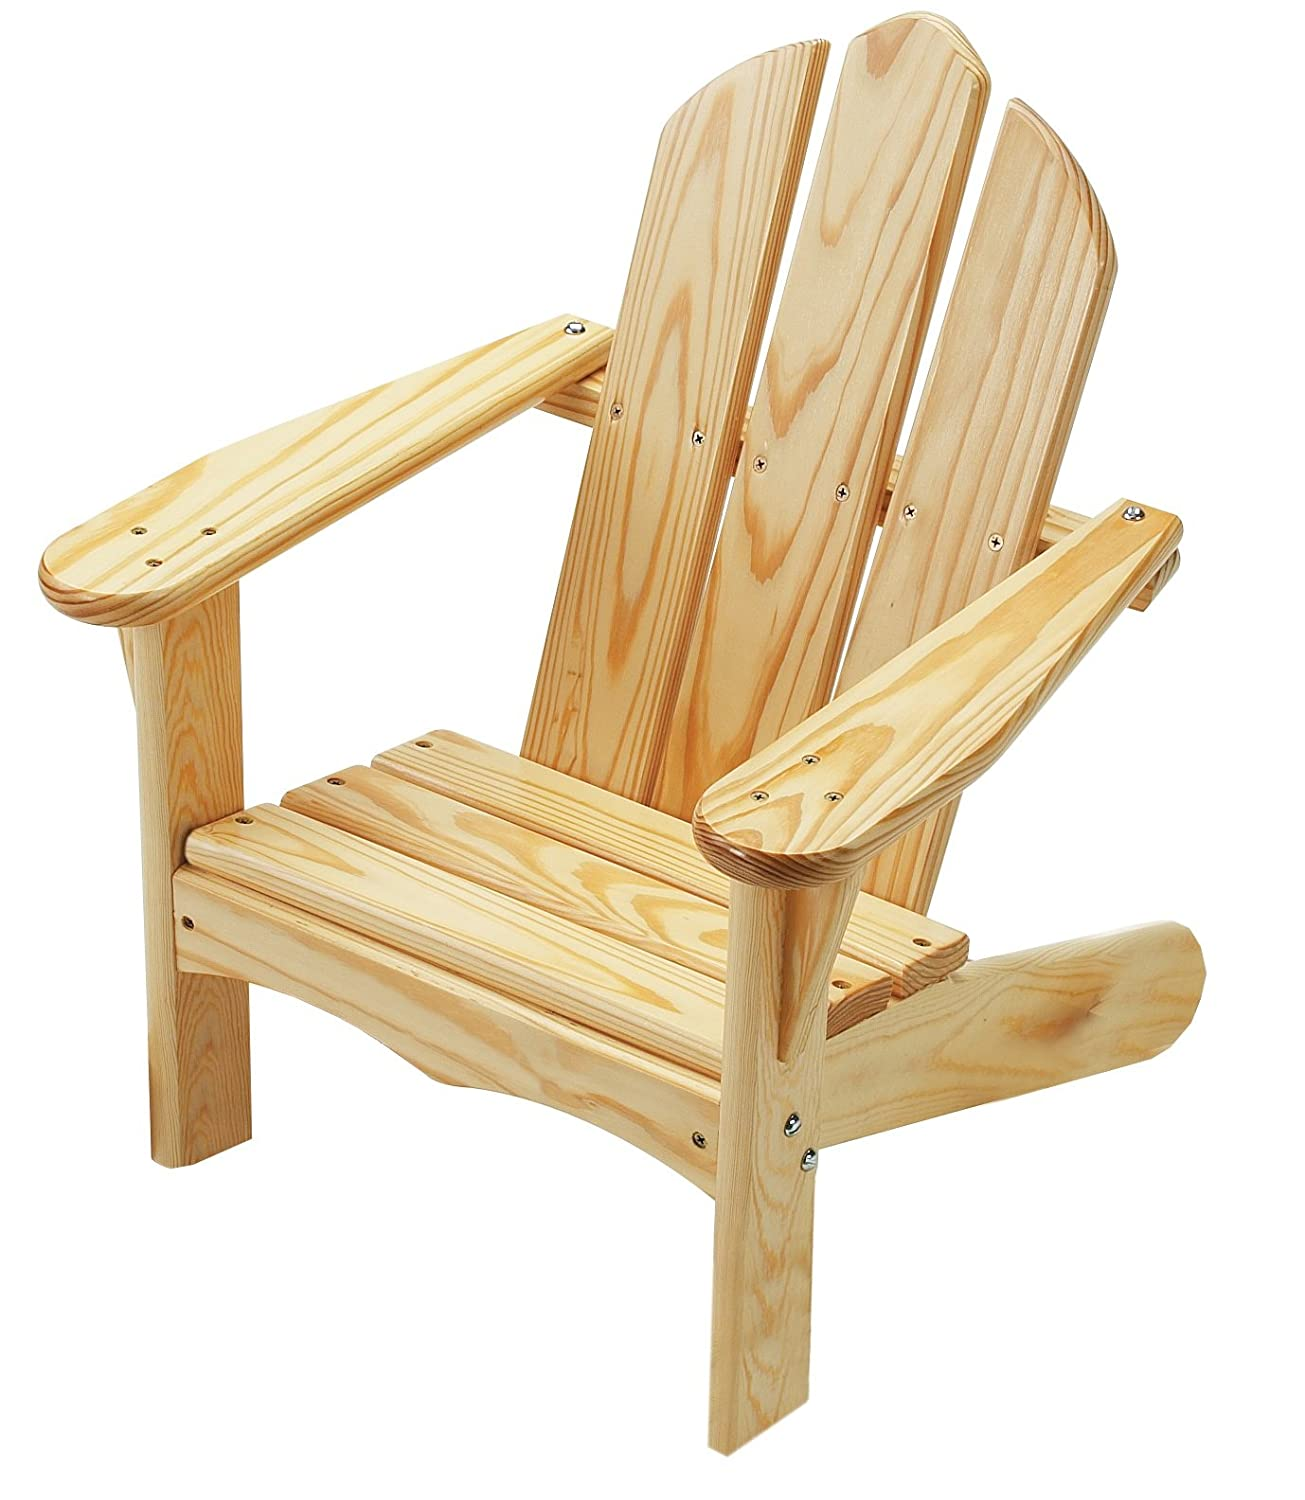 chair christopher hanlee itm chairs outdoor set by folding wood of knight adirondack home